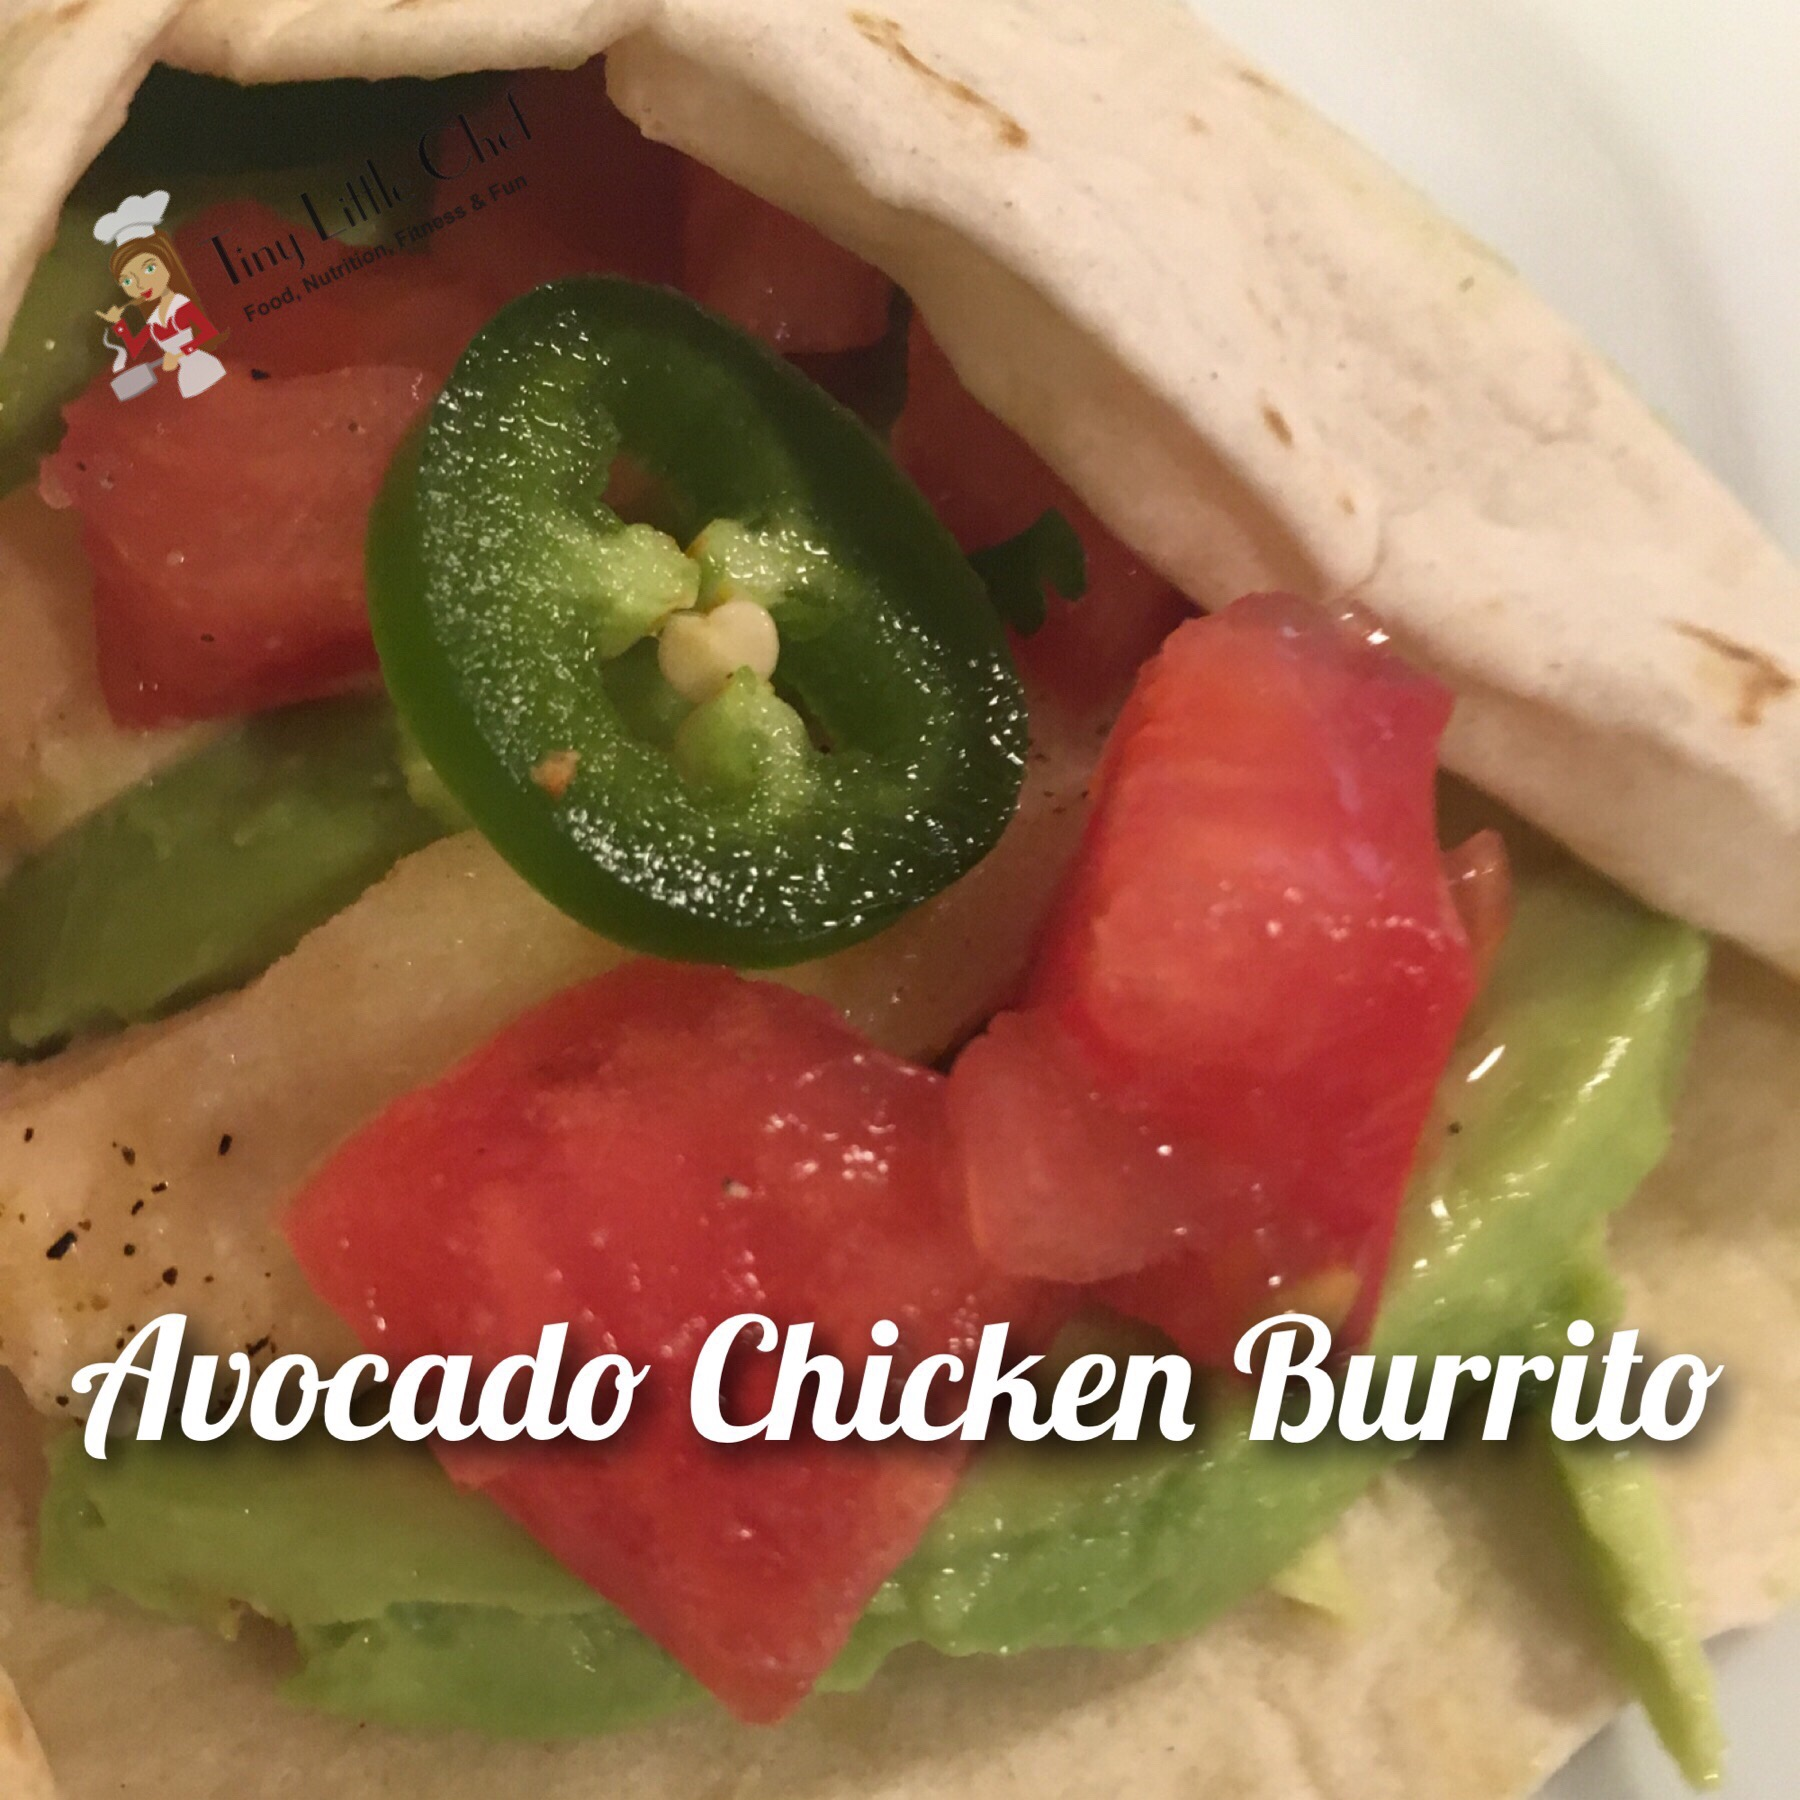 Tiny Little Chef Avocado Chicken Burrito